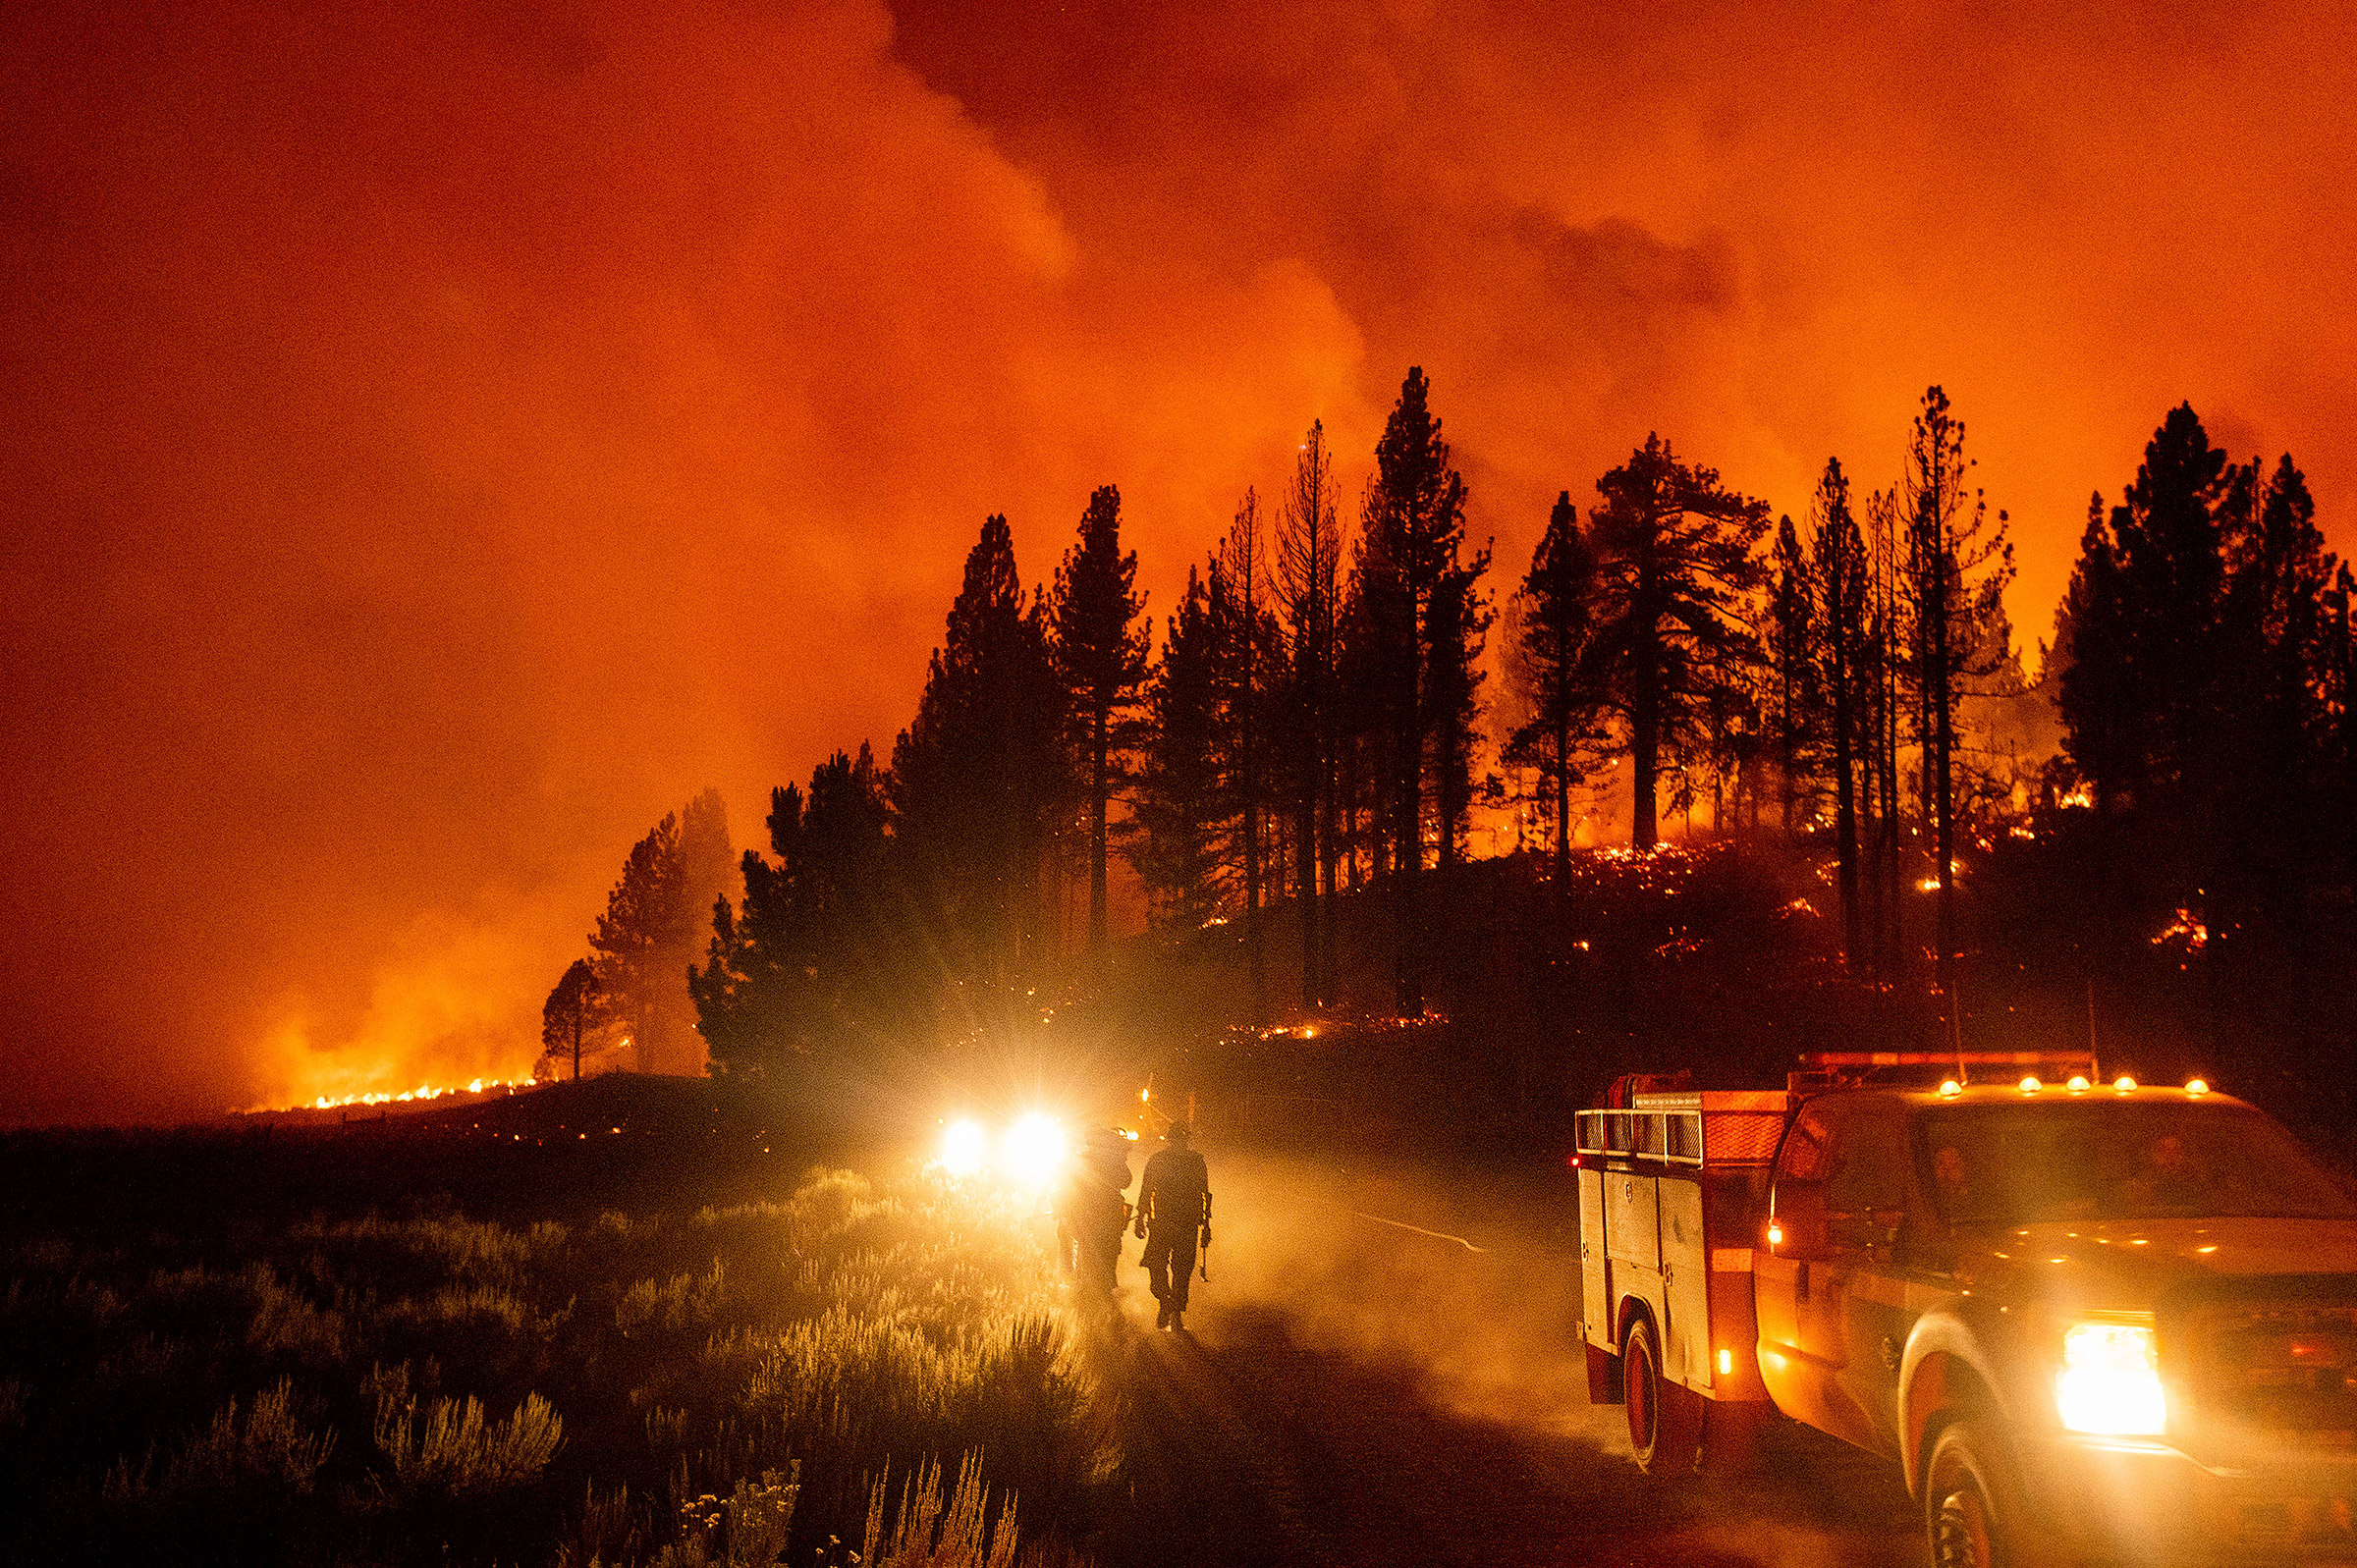 Firefighters battle the Sugar Fire, part of the Beckwourth Complex Fire, burning in Plumas National Forest, Calif., on July 8.